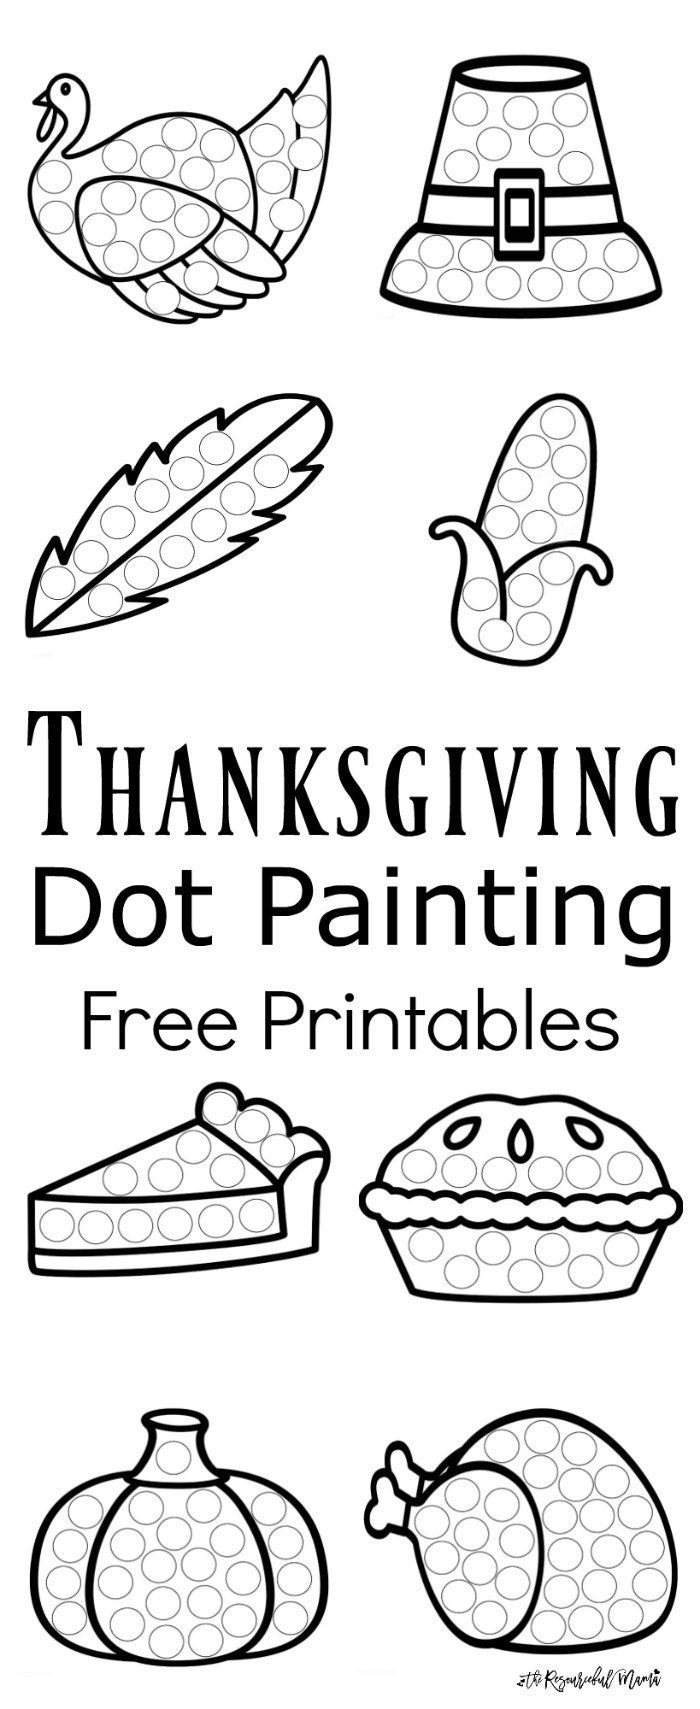 Thanksgiving Dot Painting {Free Printables} | Pre-K Activities - Free Printable Thanksgiving Activities For Preschoolers